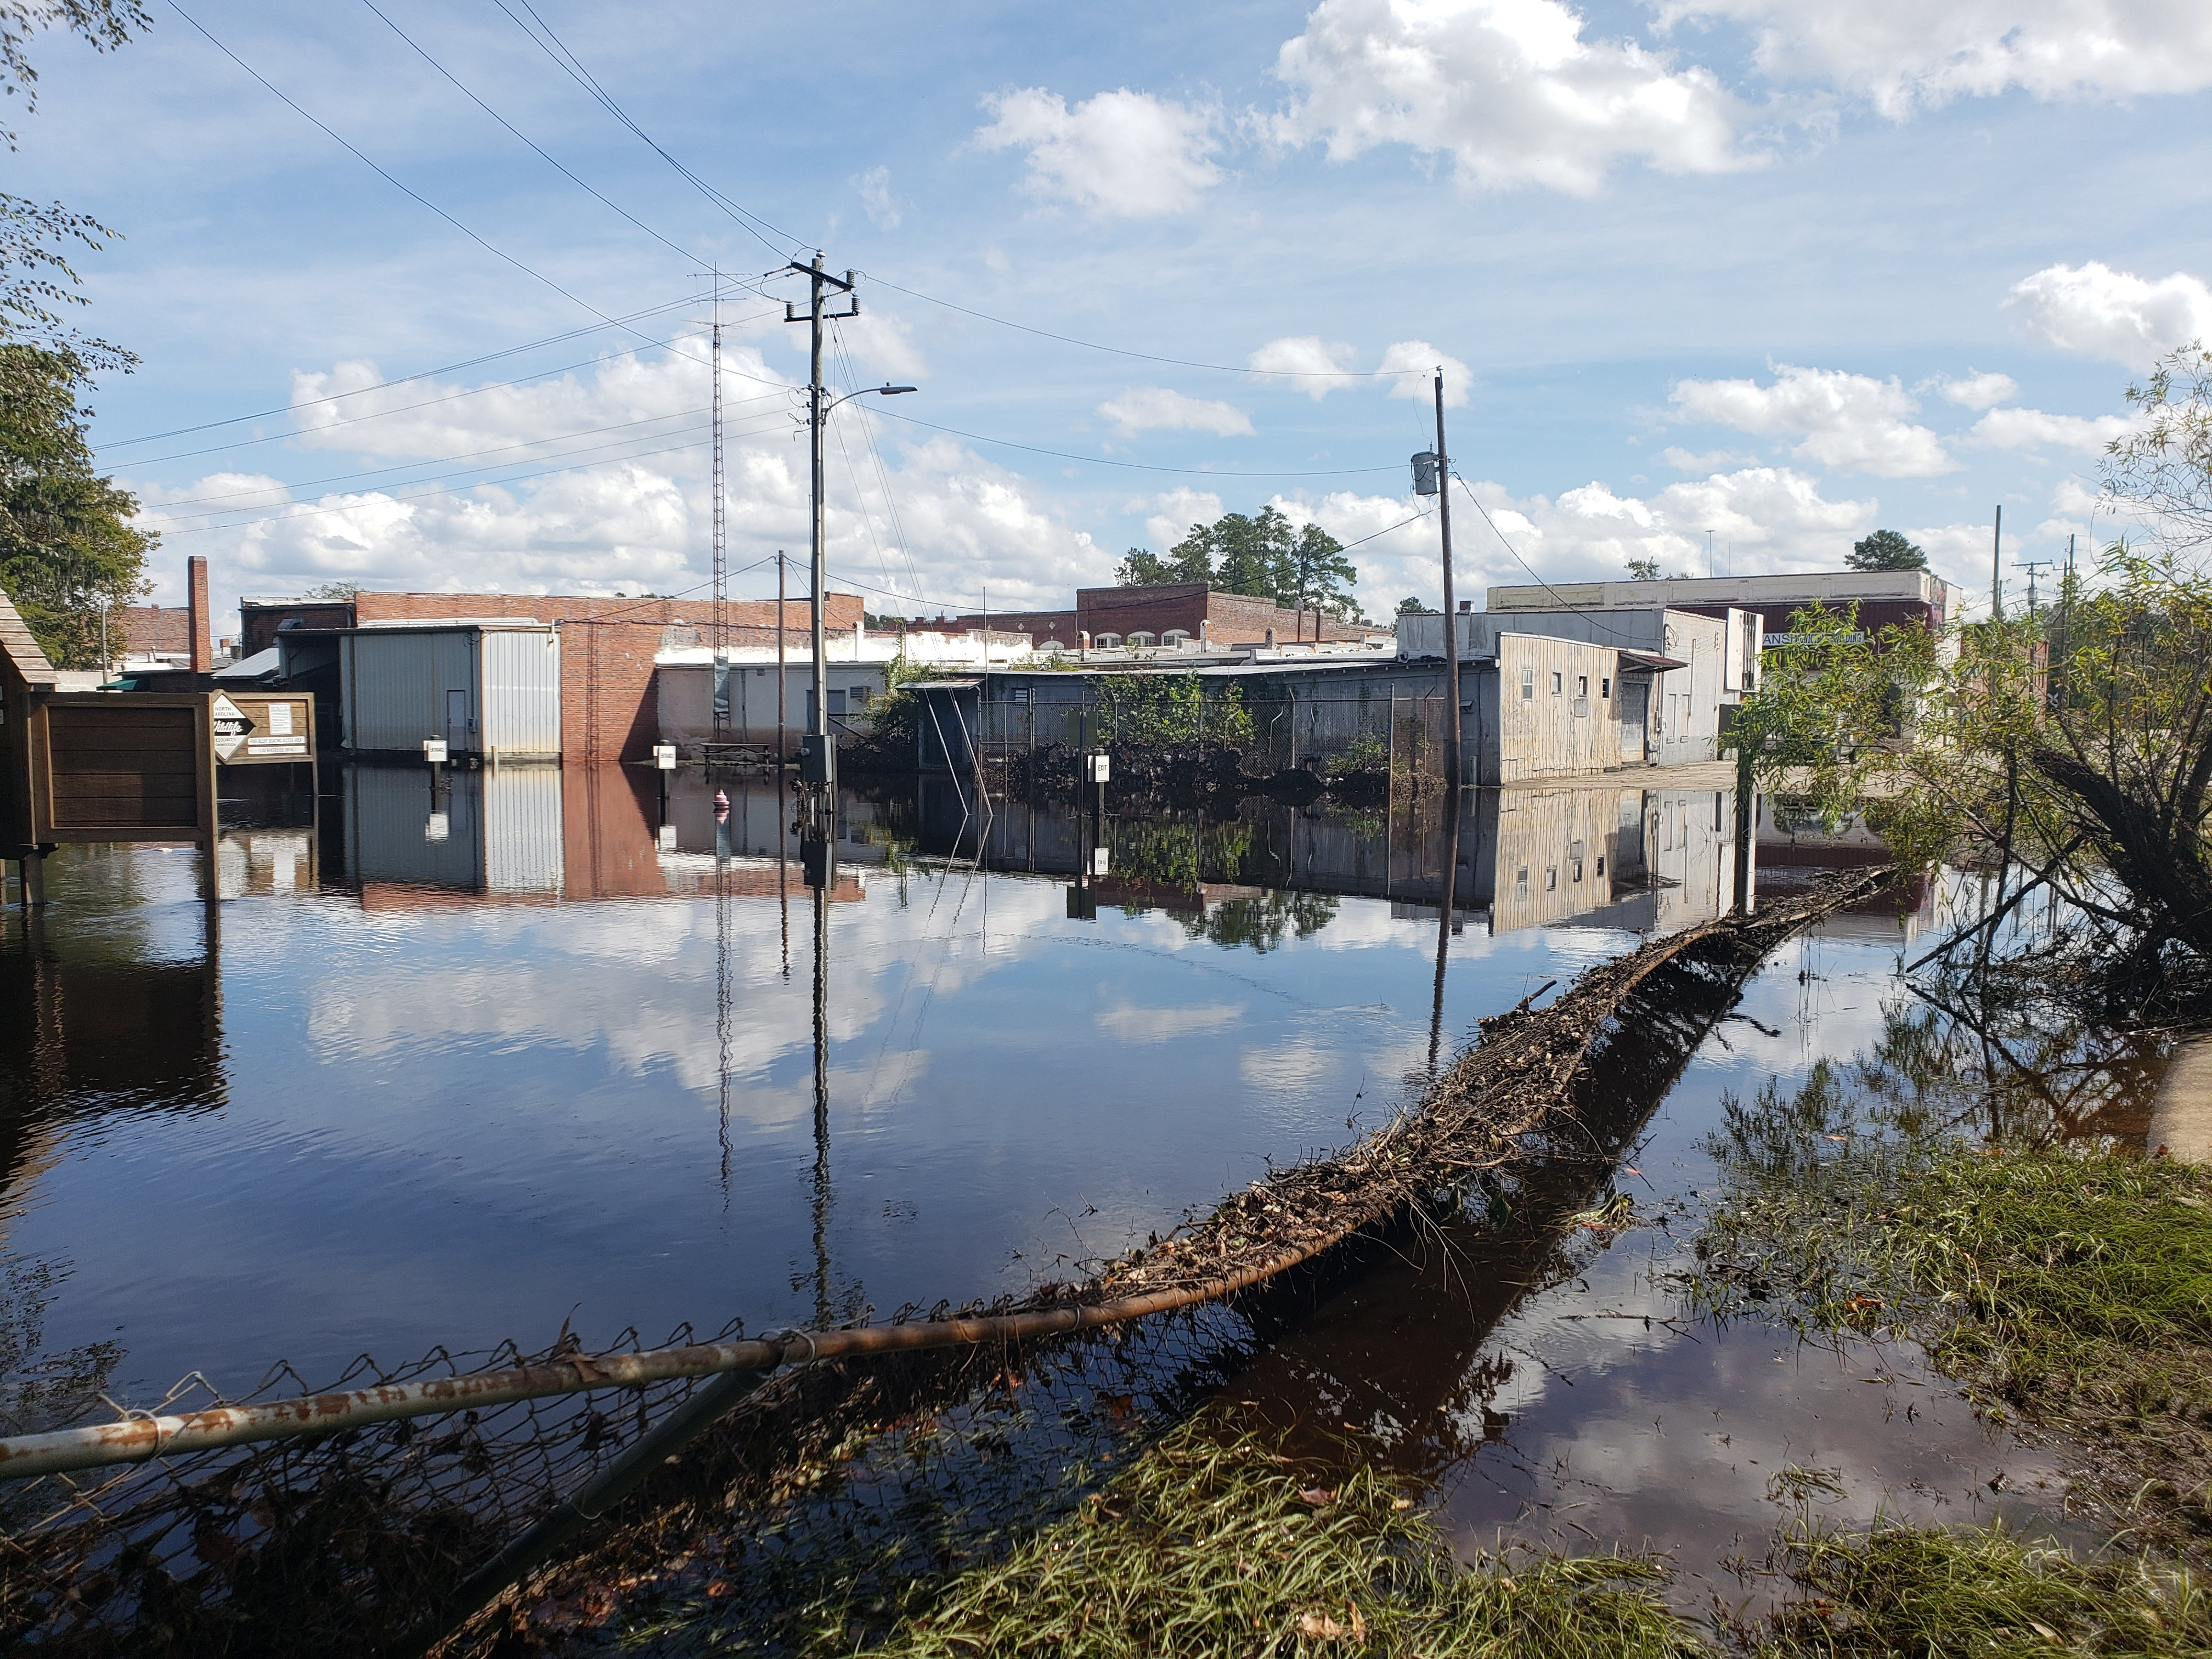 Still recovering from severe flooding suffered during Hurricane Matthew just two years earlier, Hurricane Florence brought more devastating flooding to downtown Fair Bluff.  Water several feet deep destroyed many businesses.